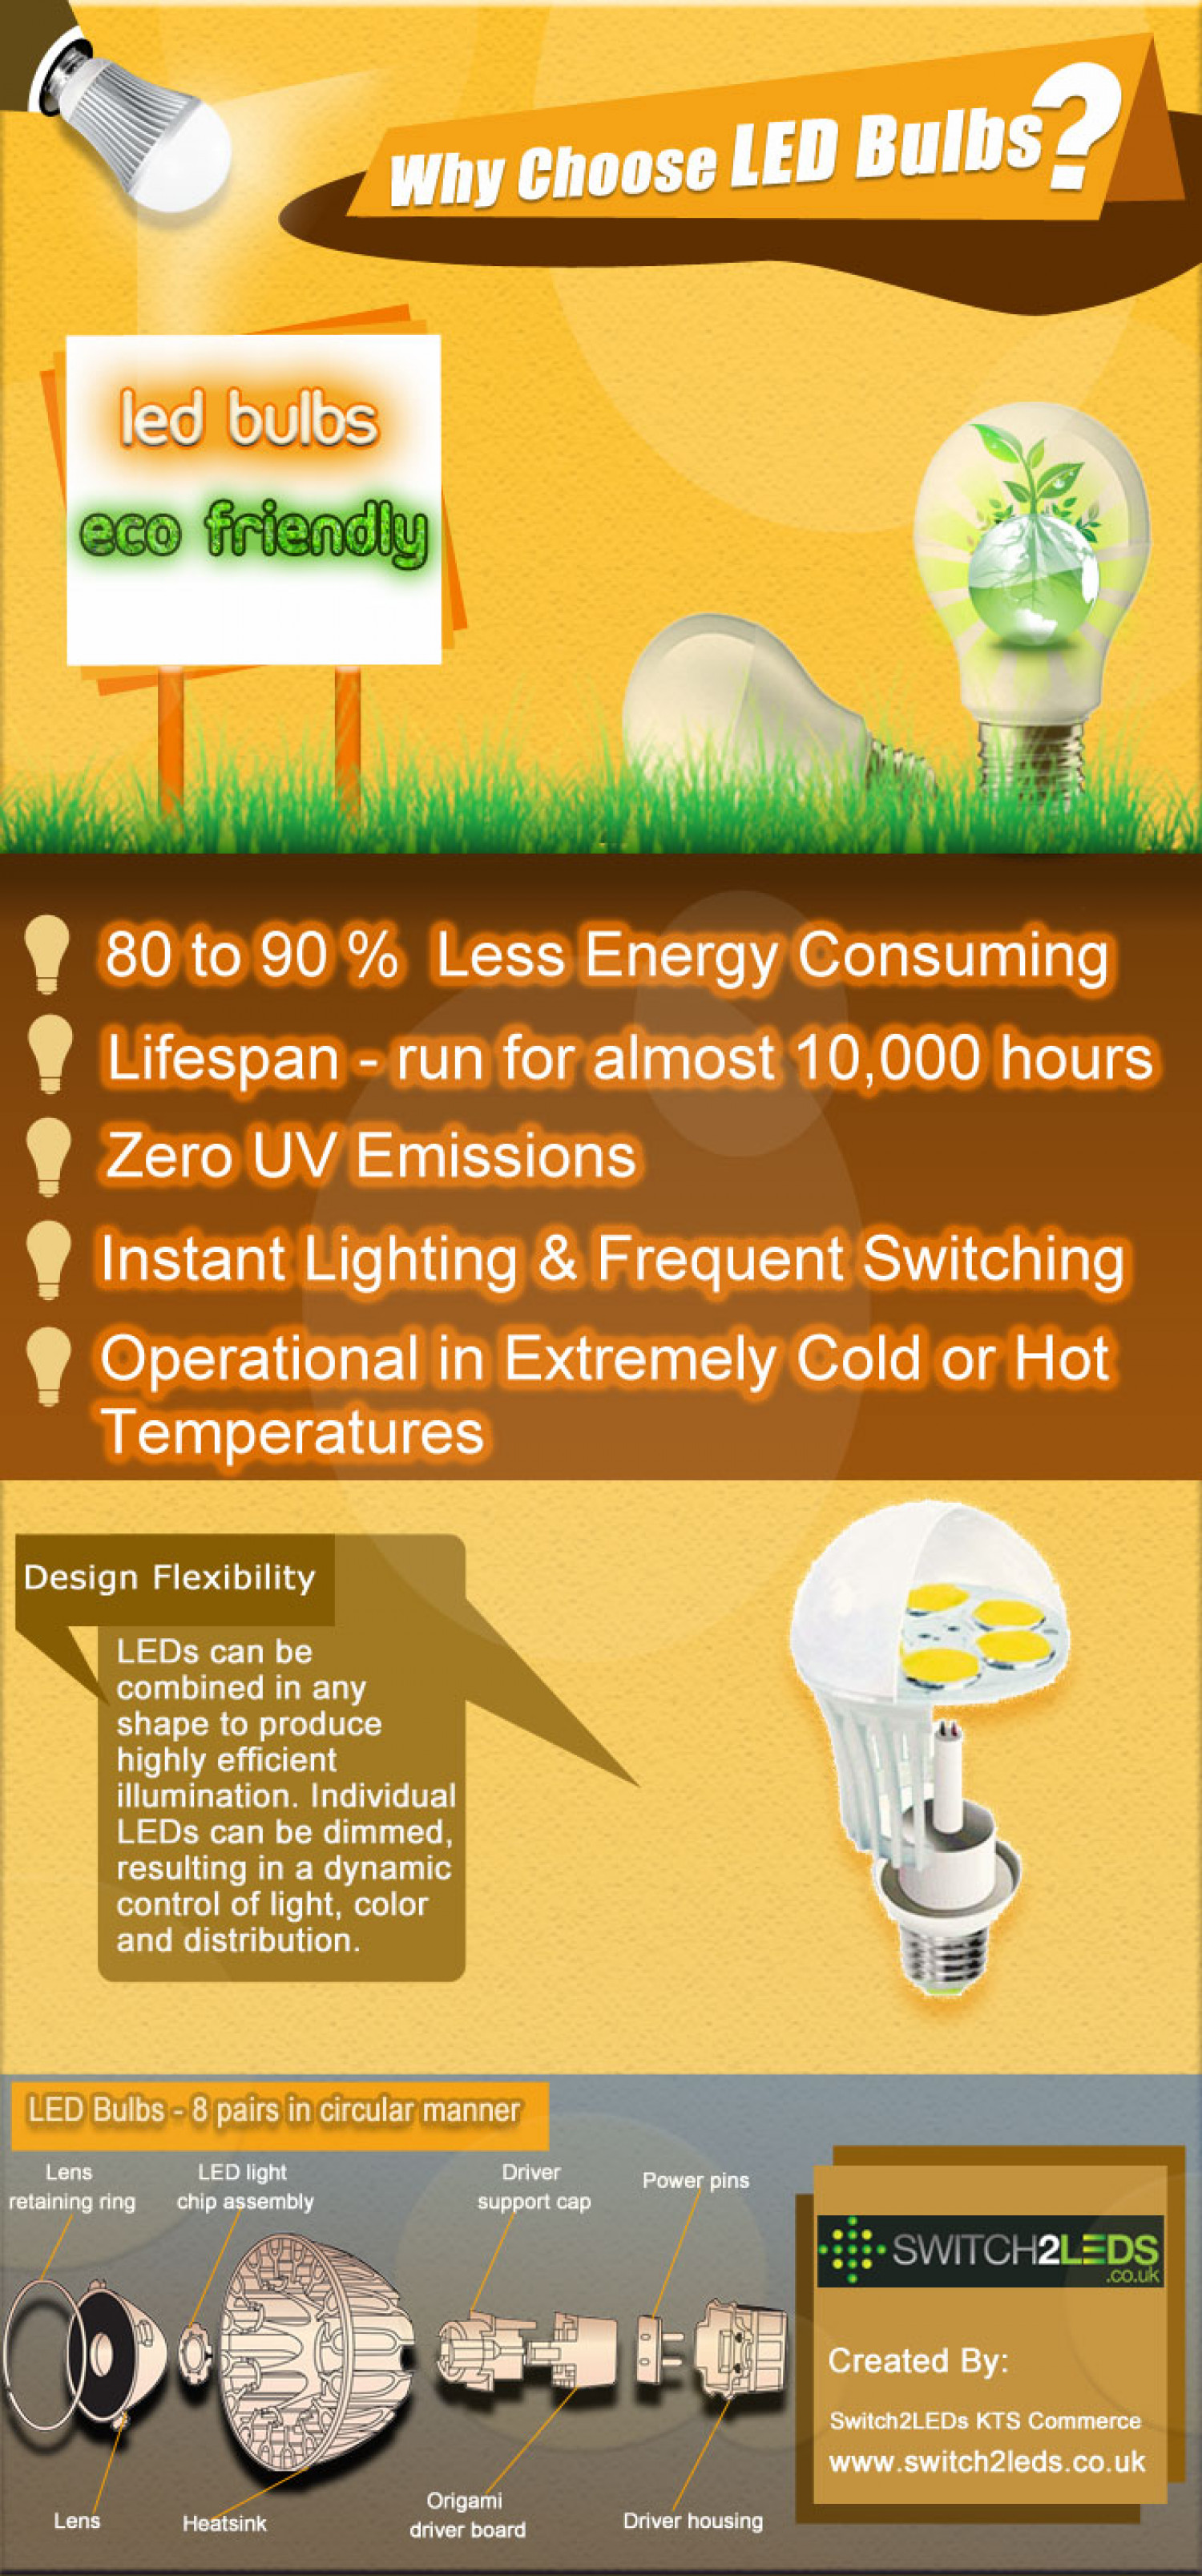 Why Choose LED Bulbs? Infographic